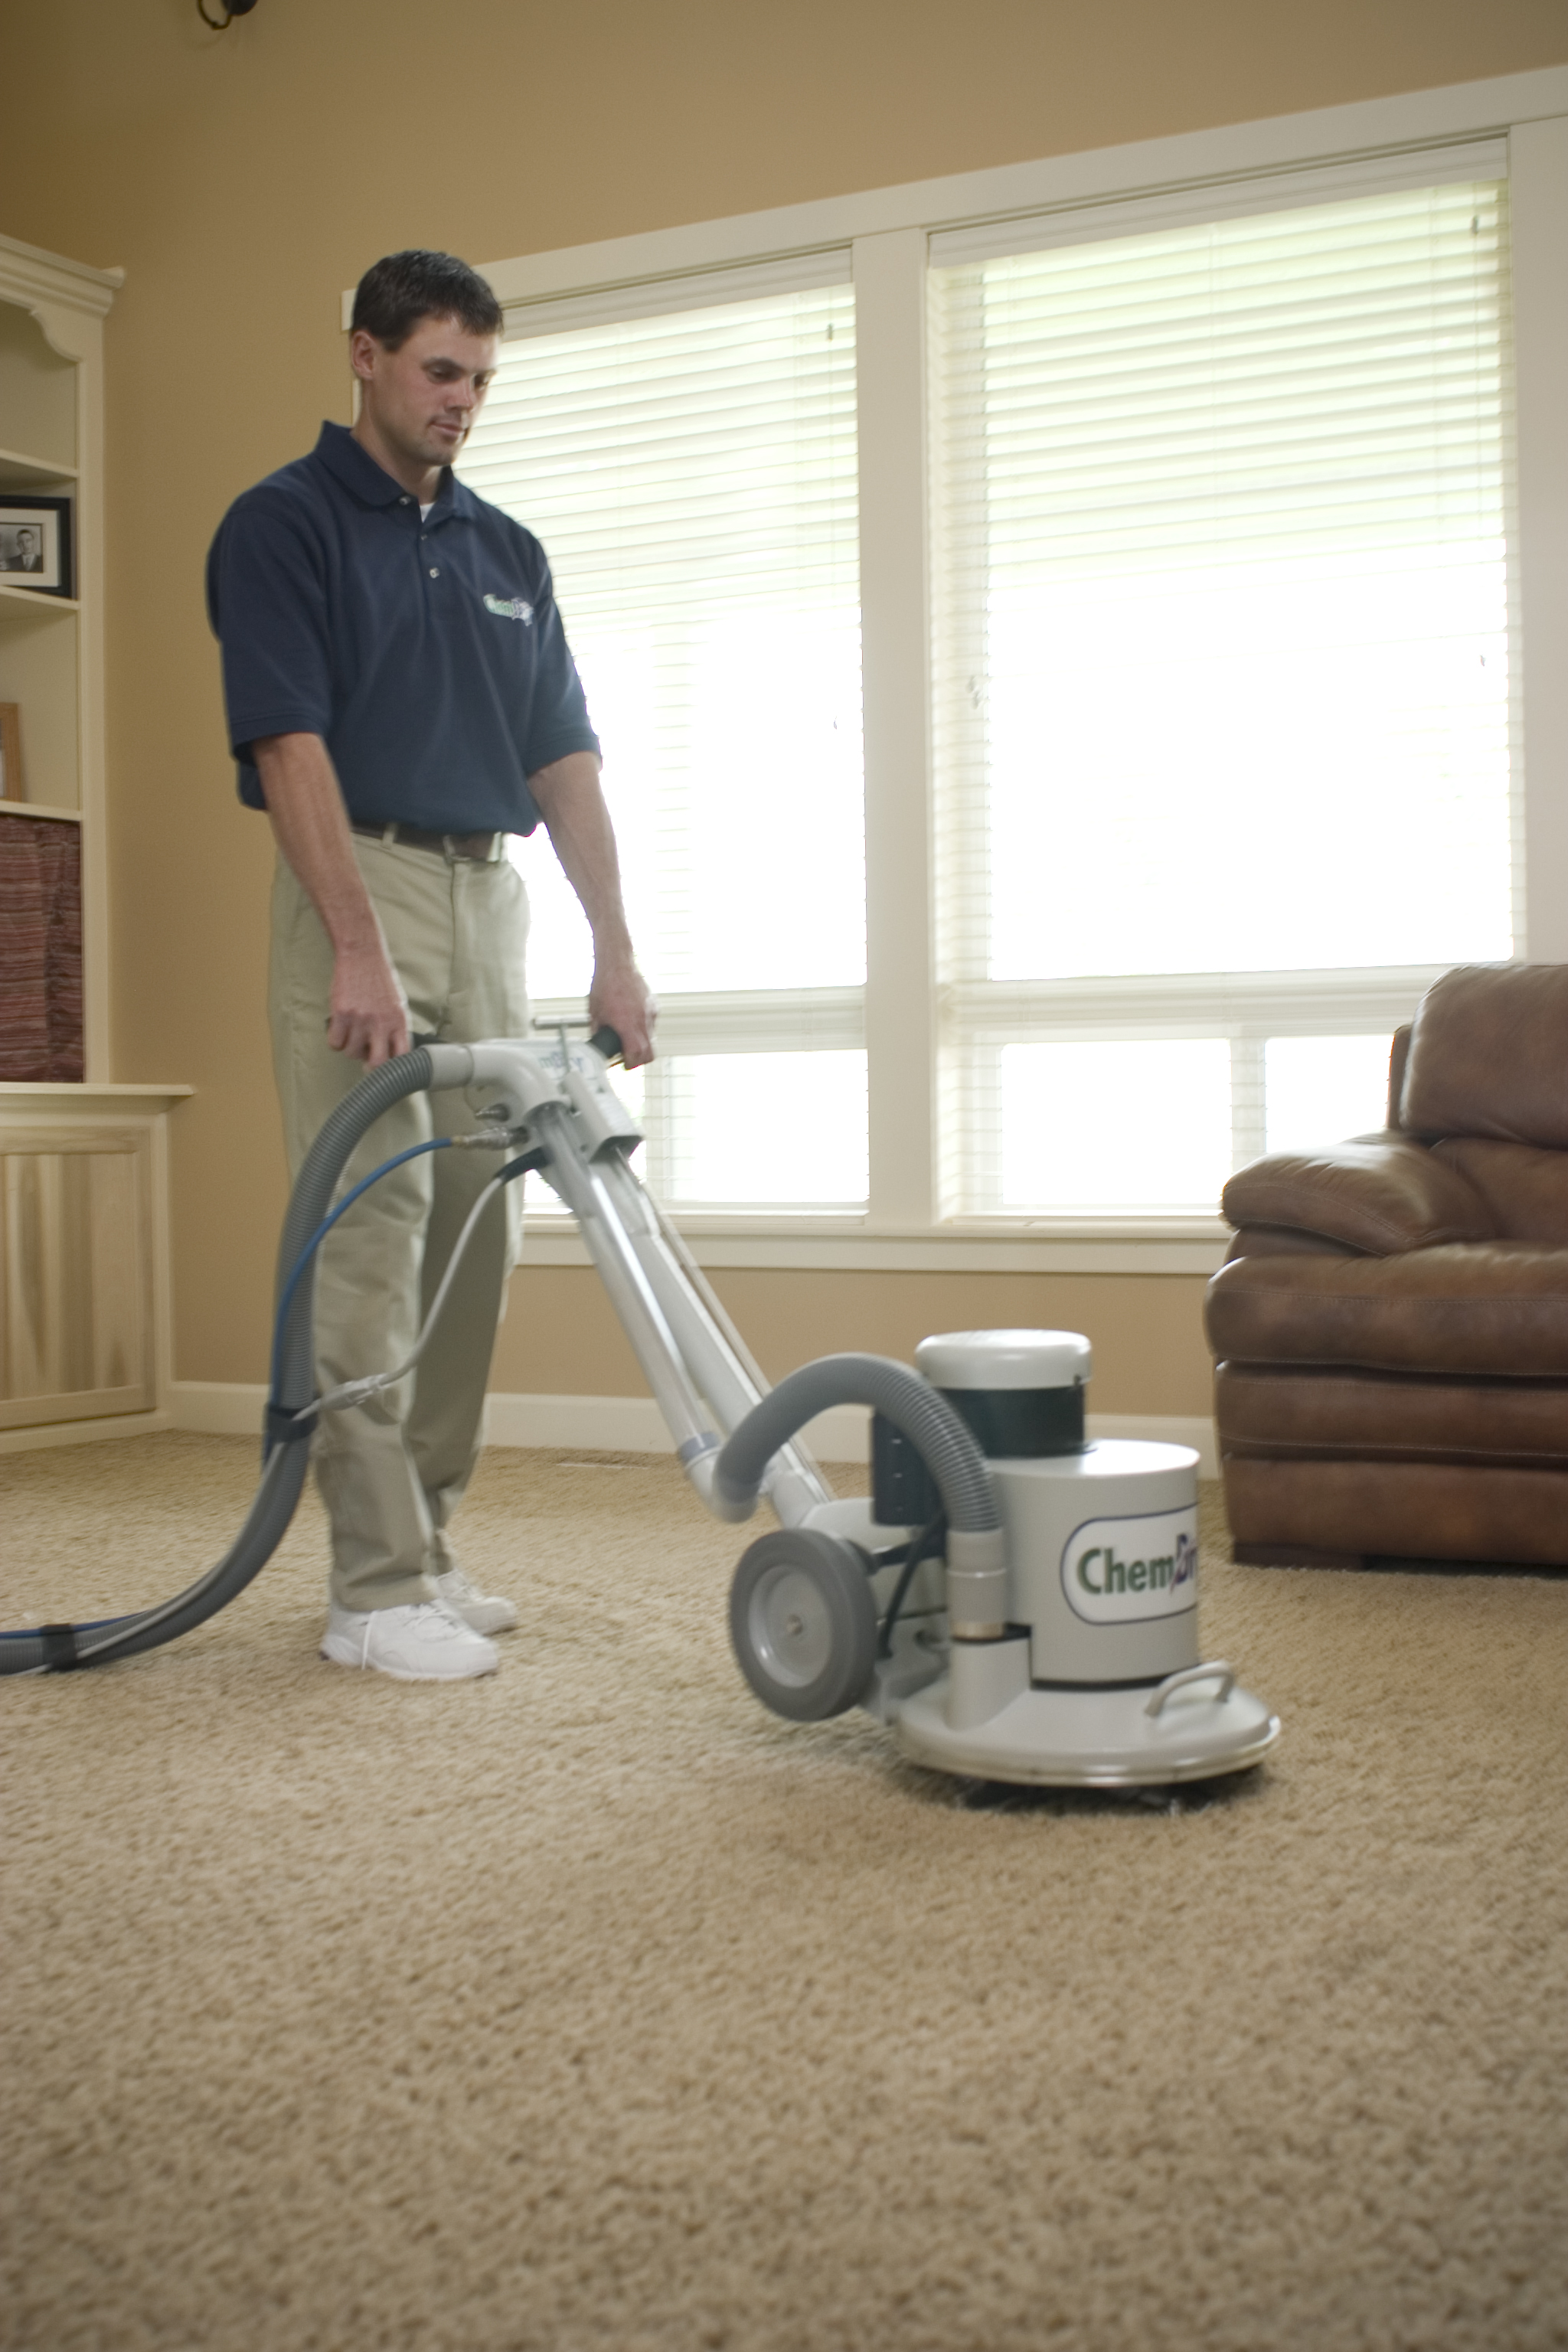 Chem-Dry Clearwater/Largo is your healthy home provider for carpet cleaning in Largo Florida